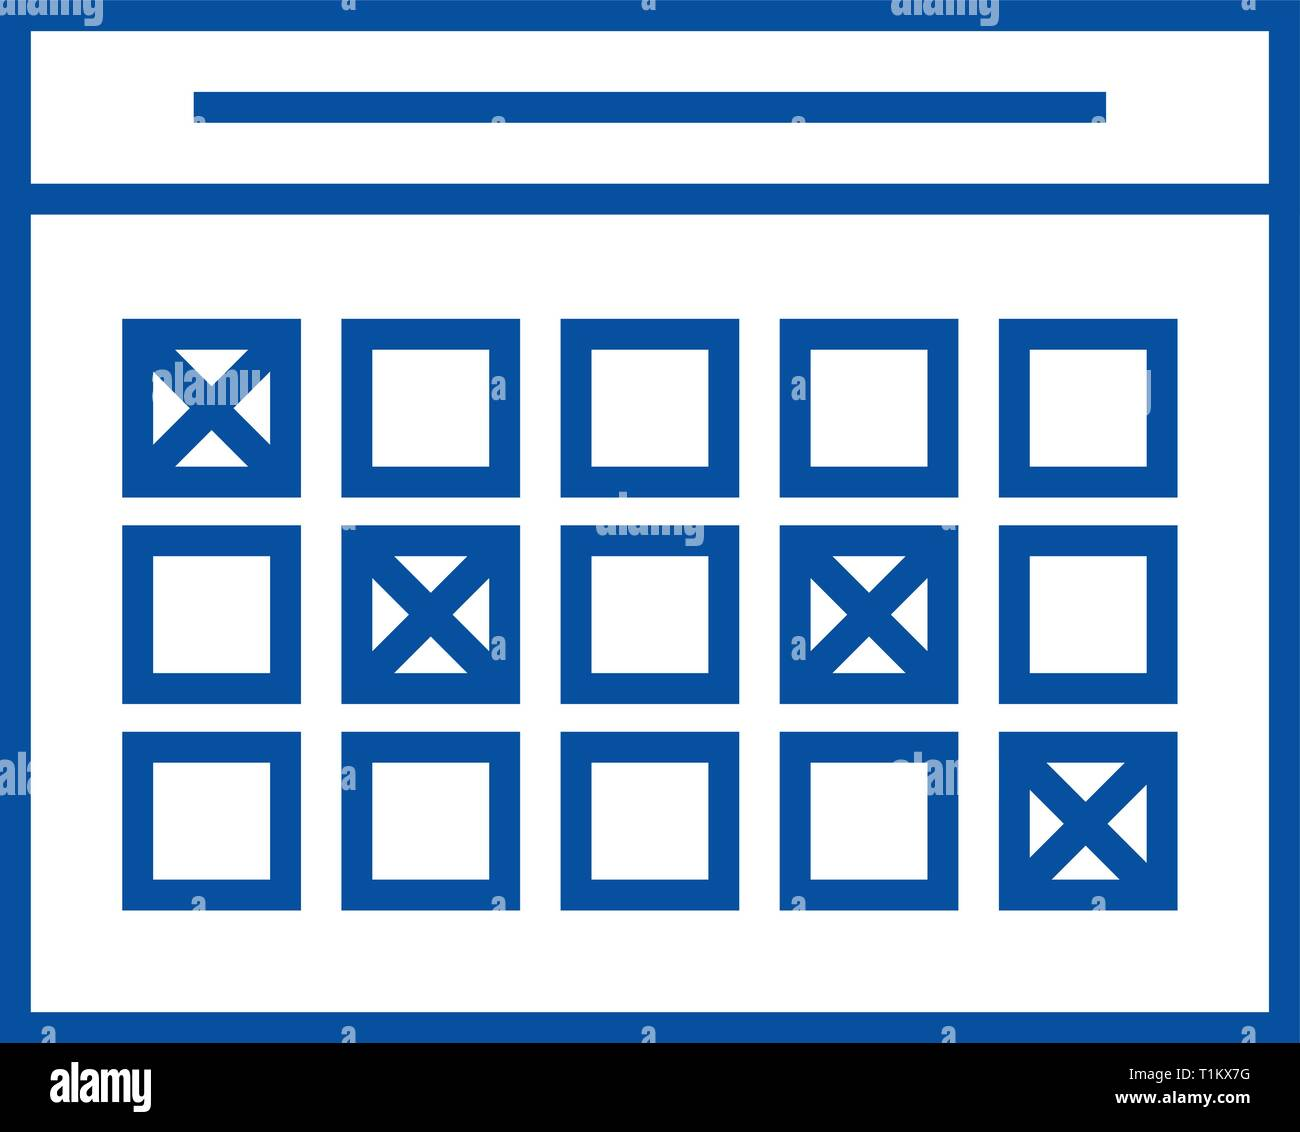 School Time Table Chart Stock Photos & School Time Table